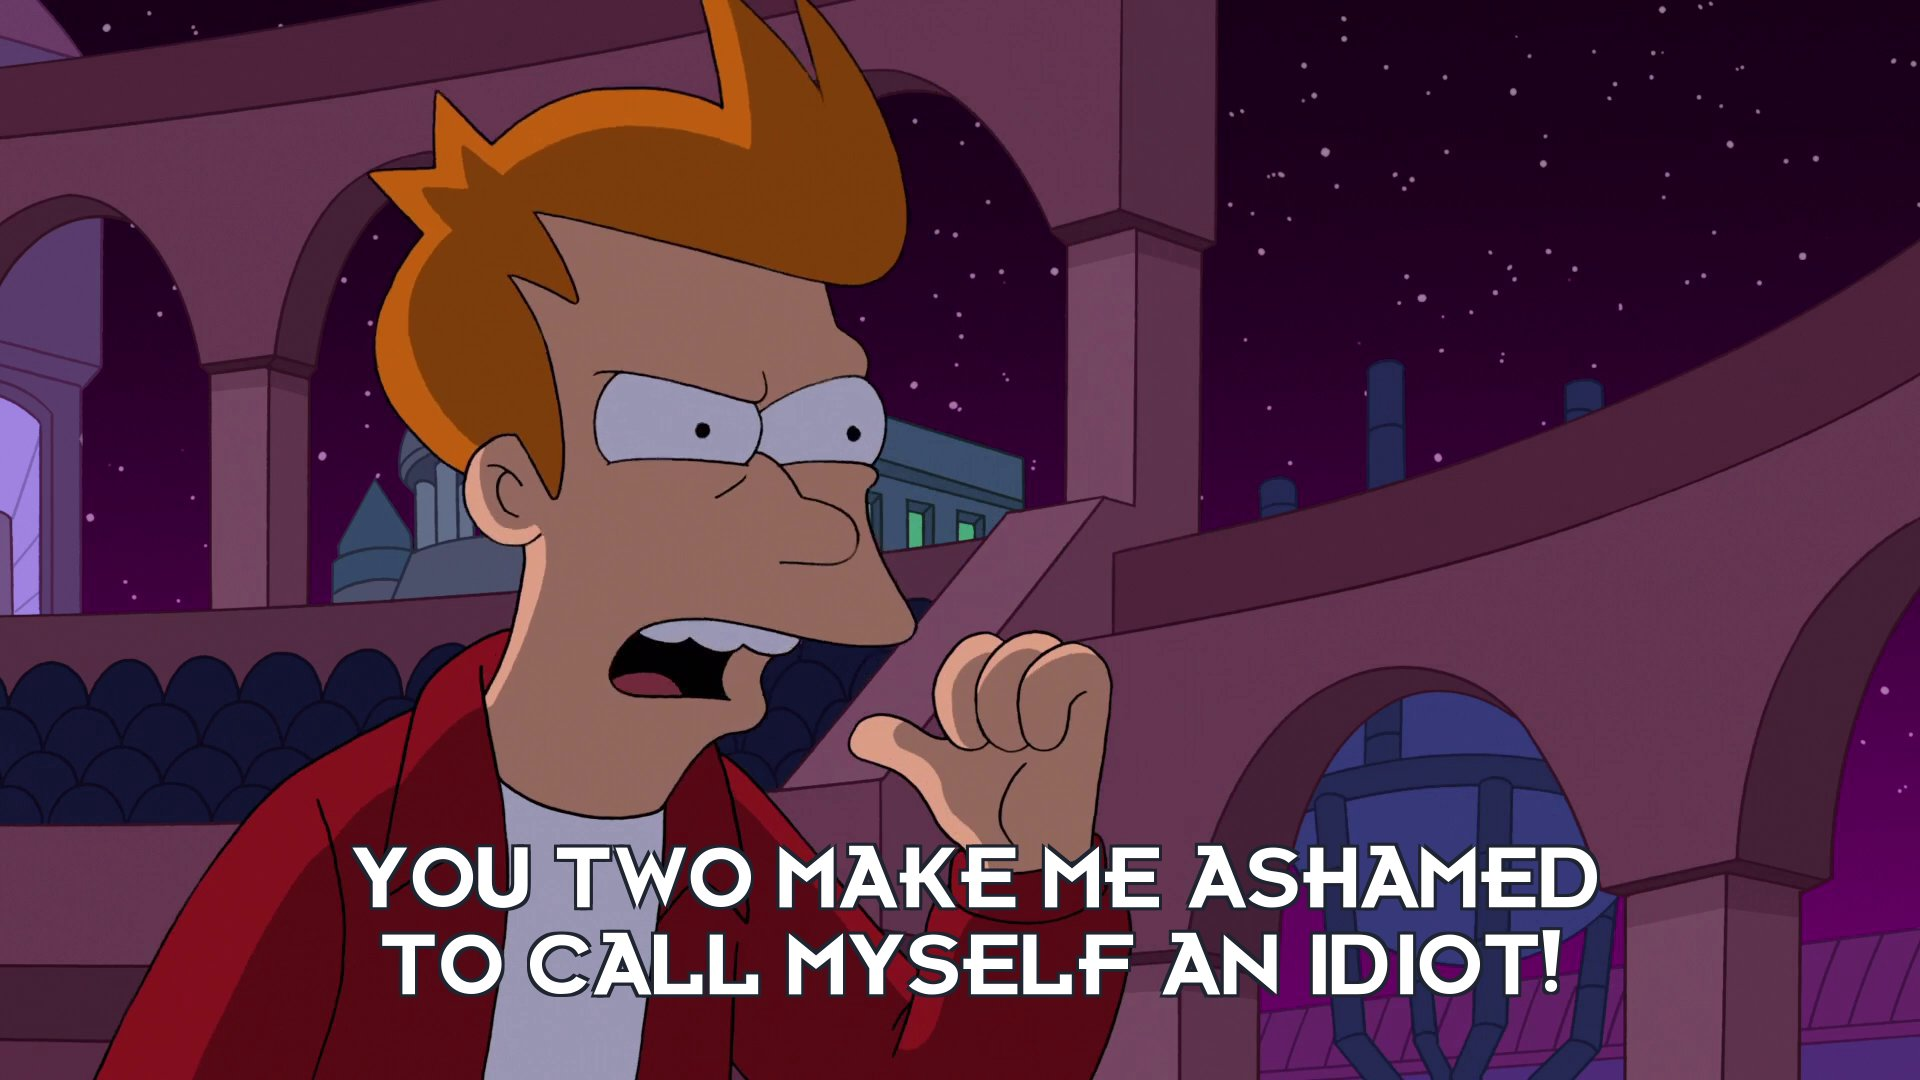 Philip J Fry: You two make me ashamed to call myself an idiot!